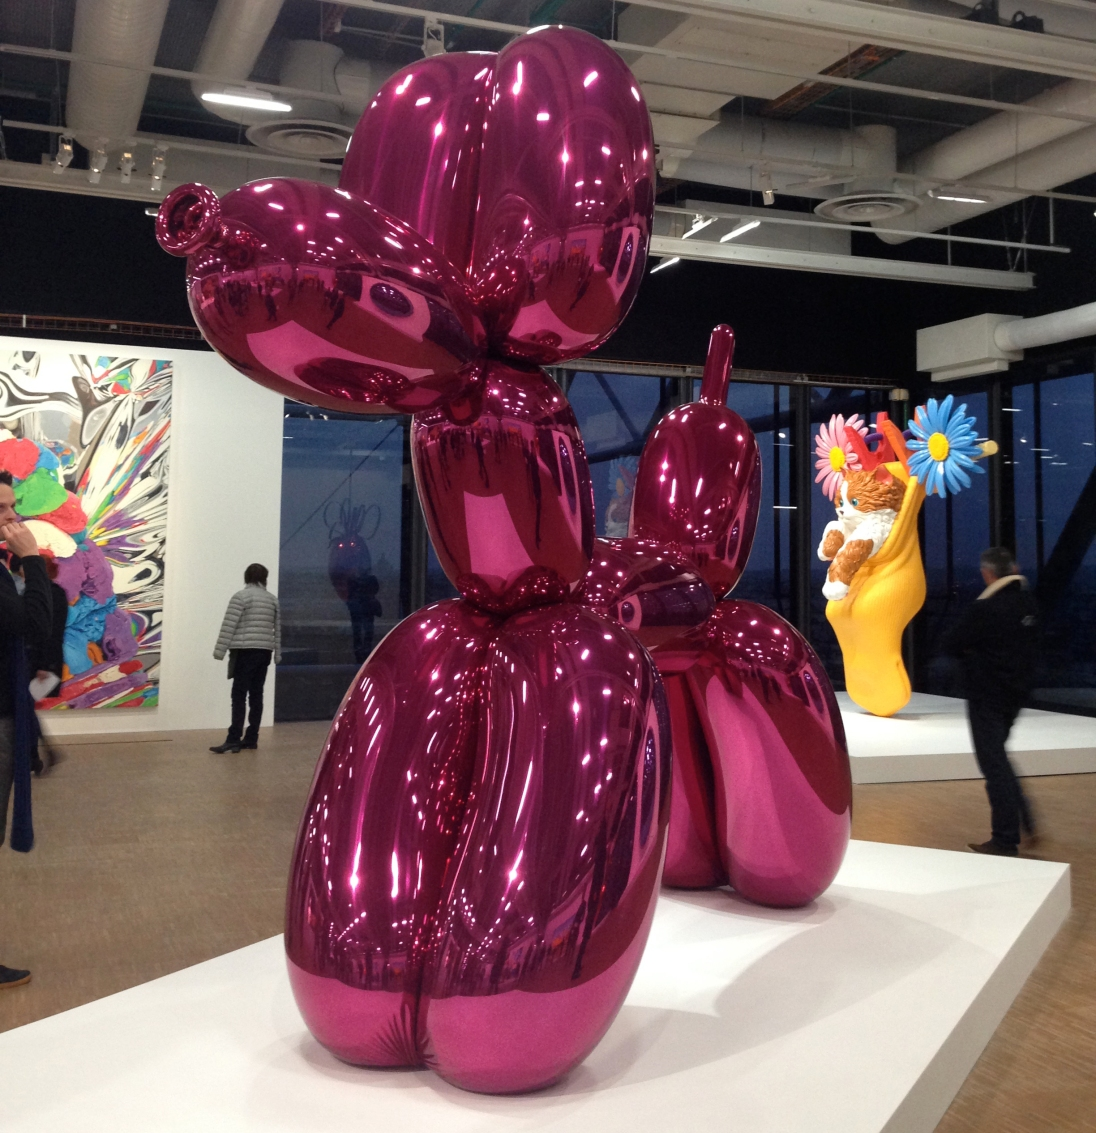 @youneedacocktail on instagram - Jeff Koons at Pompidou Center